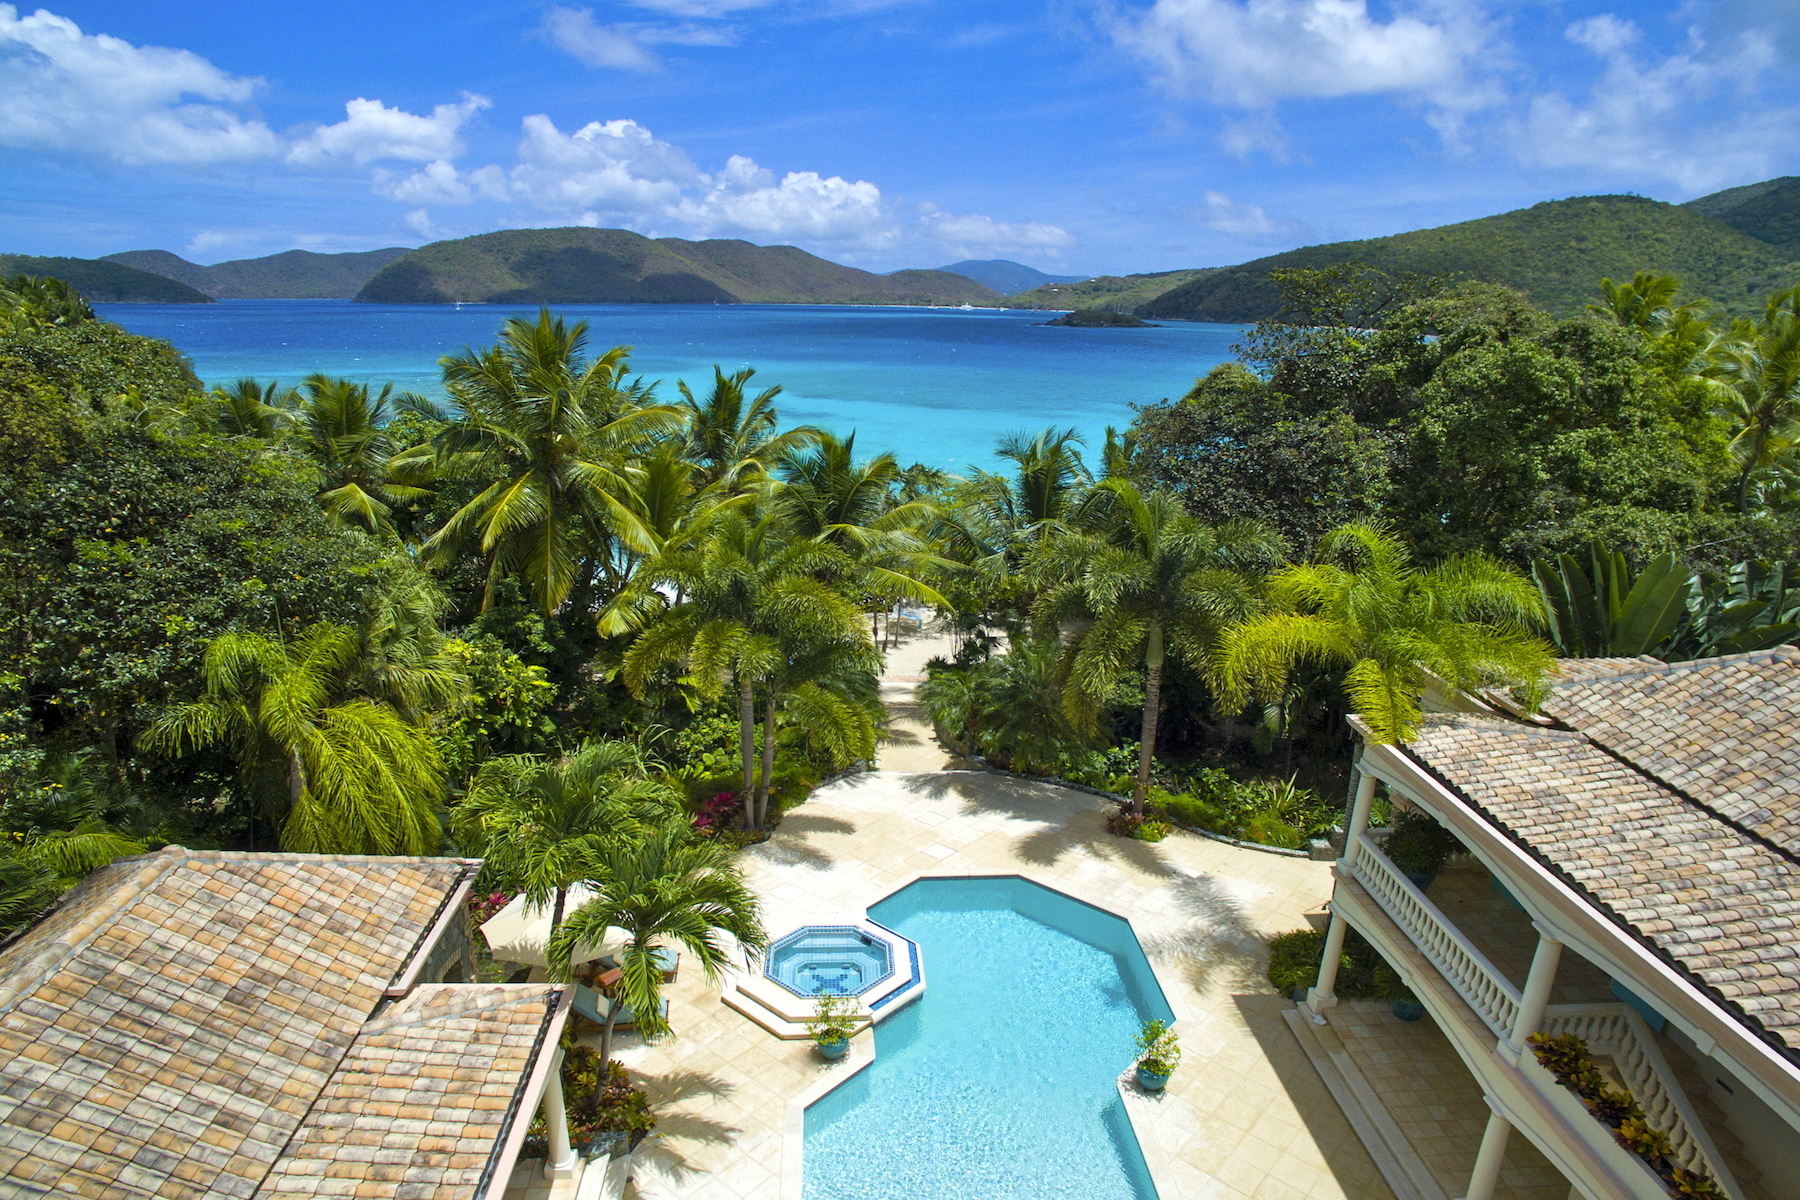 Single Family Home for Sale at 1 Peter Bay St John, Virgin Islands 00830 United States Virgin Islands